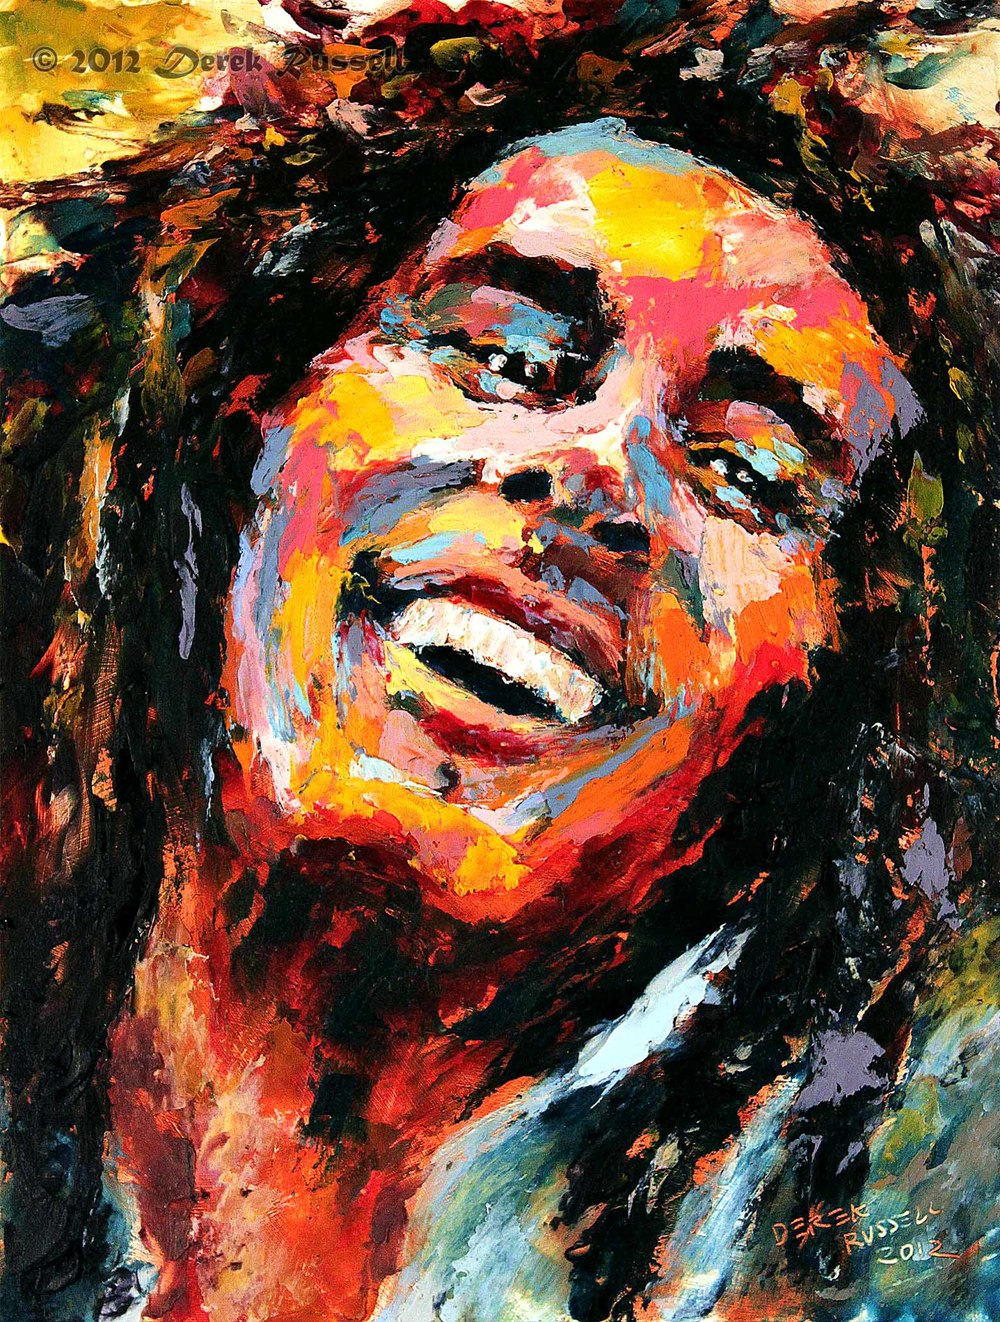 """Bob Marley"", 12""x16"", 2012, oil on board"